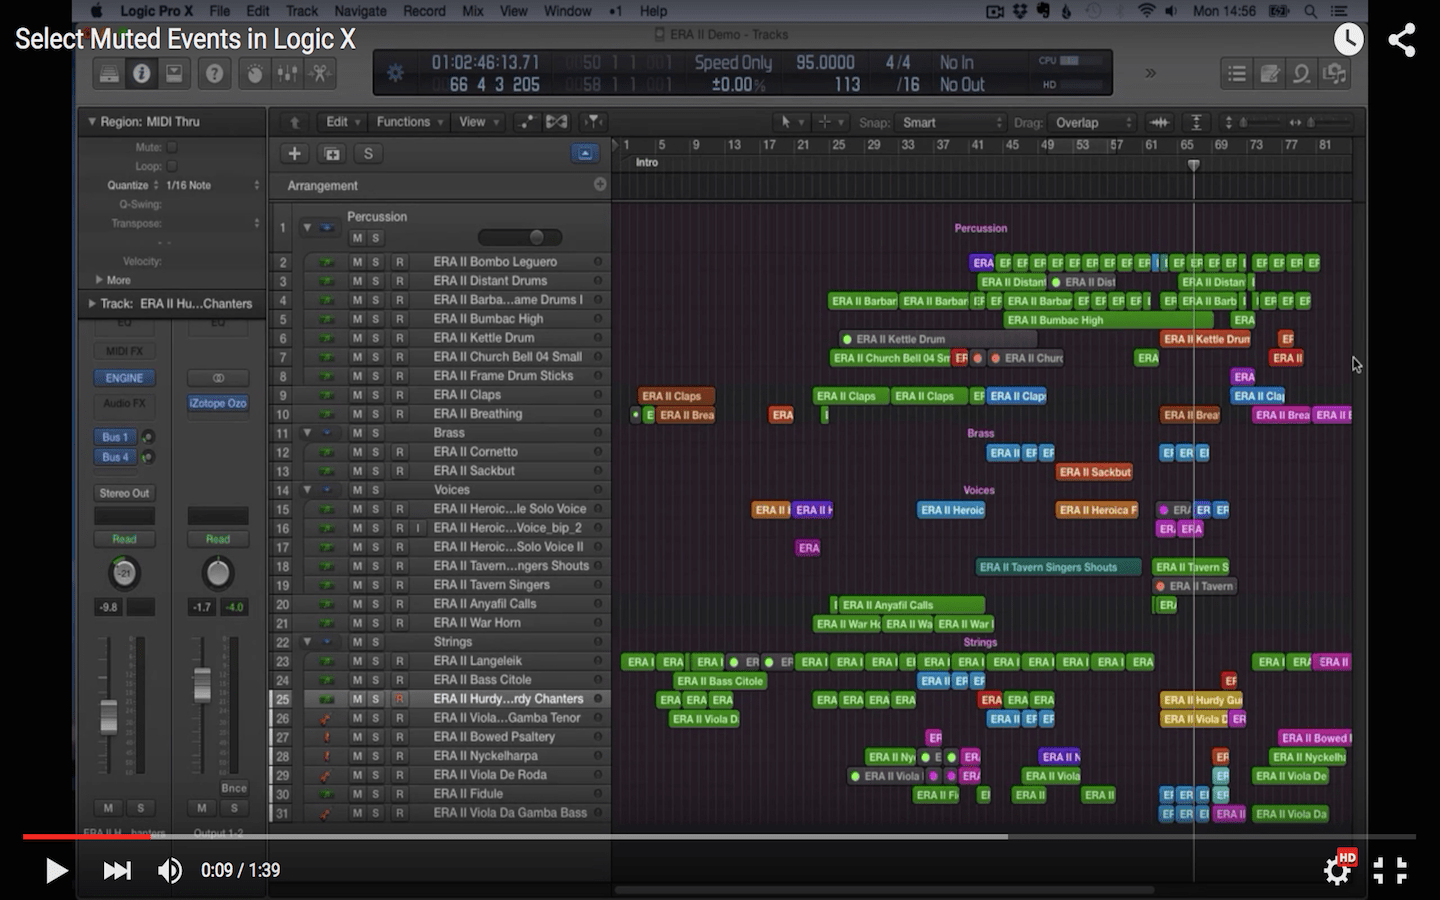 Select Muted Events in Logic X